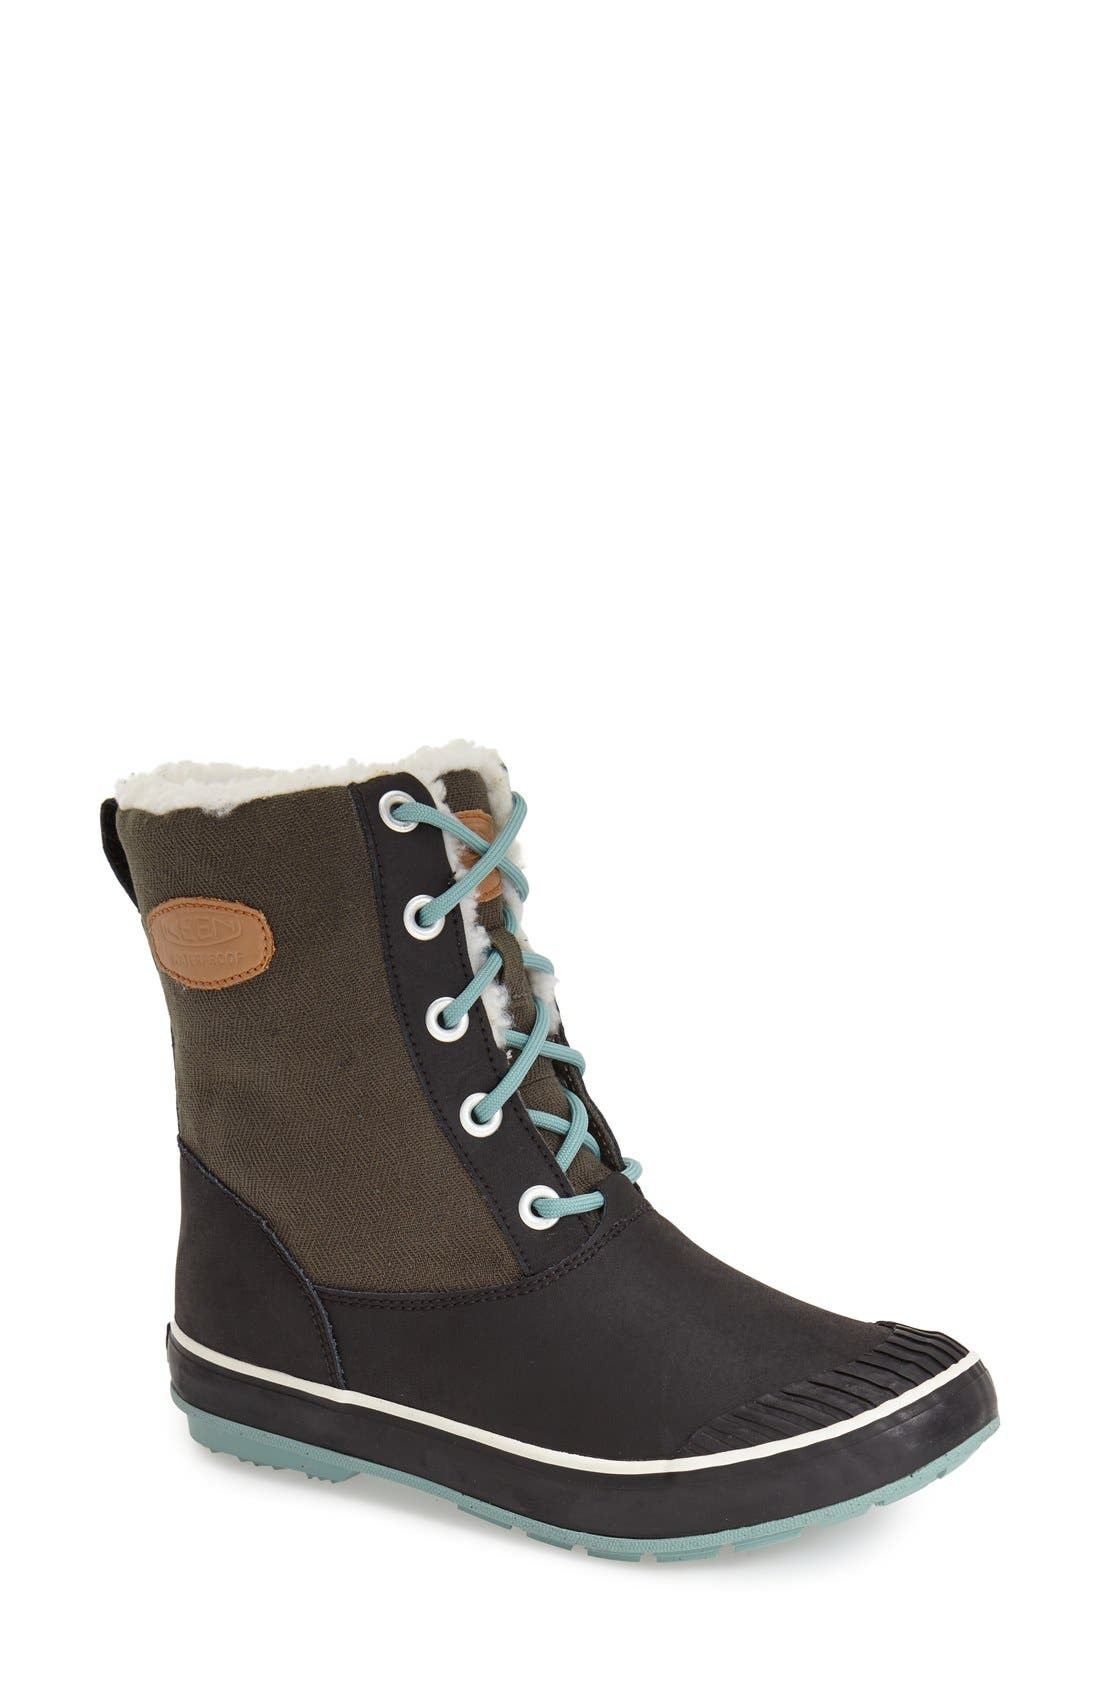 'Elsa' Waterproof Boot,                             Main thumbnail 1, color,                             Forset Night